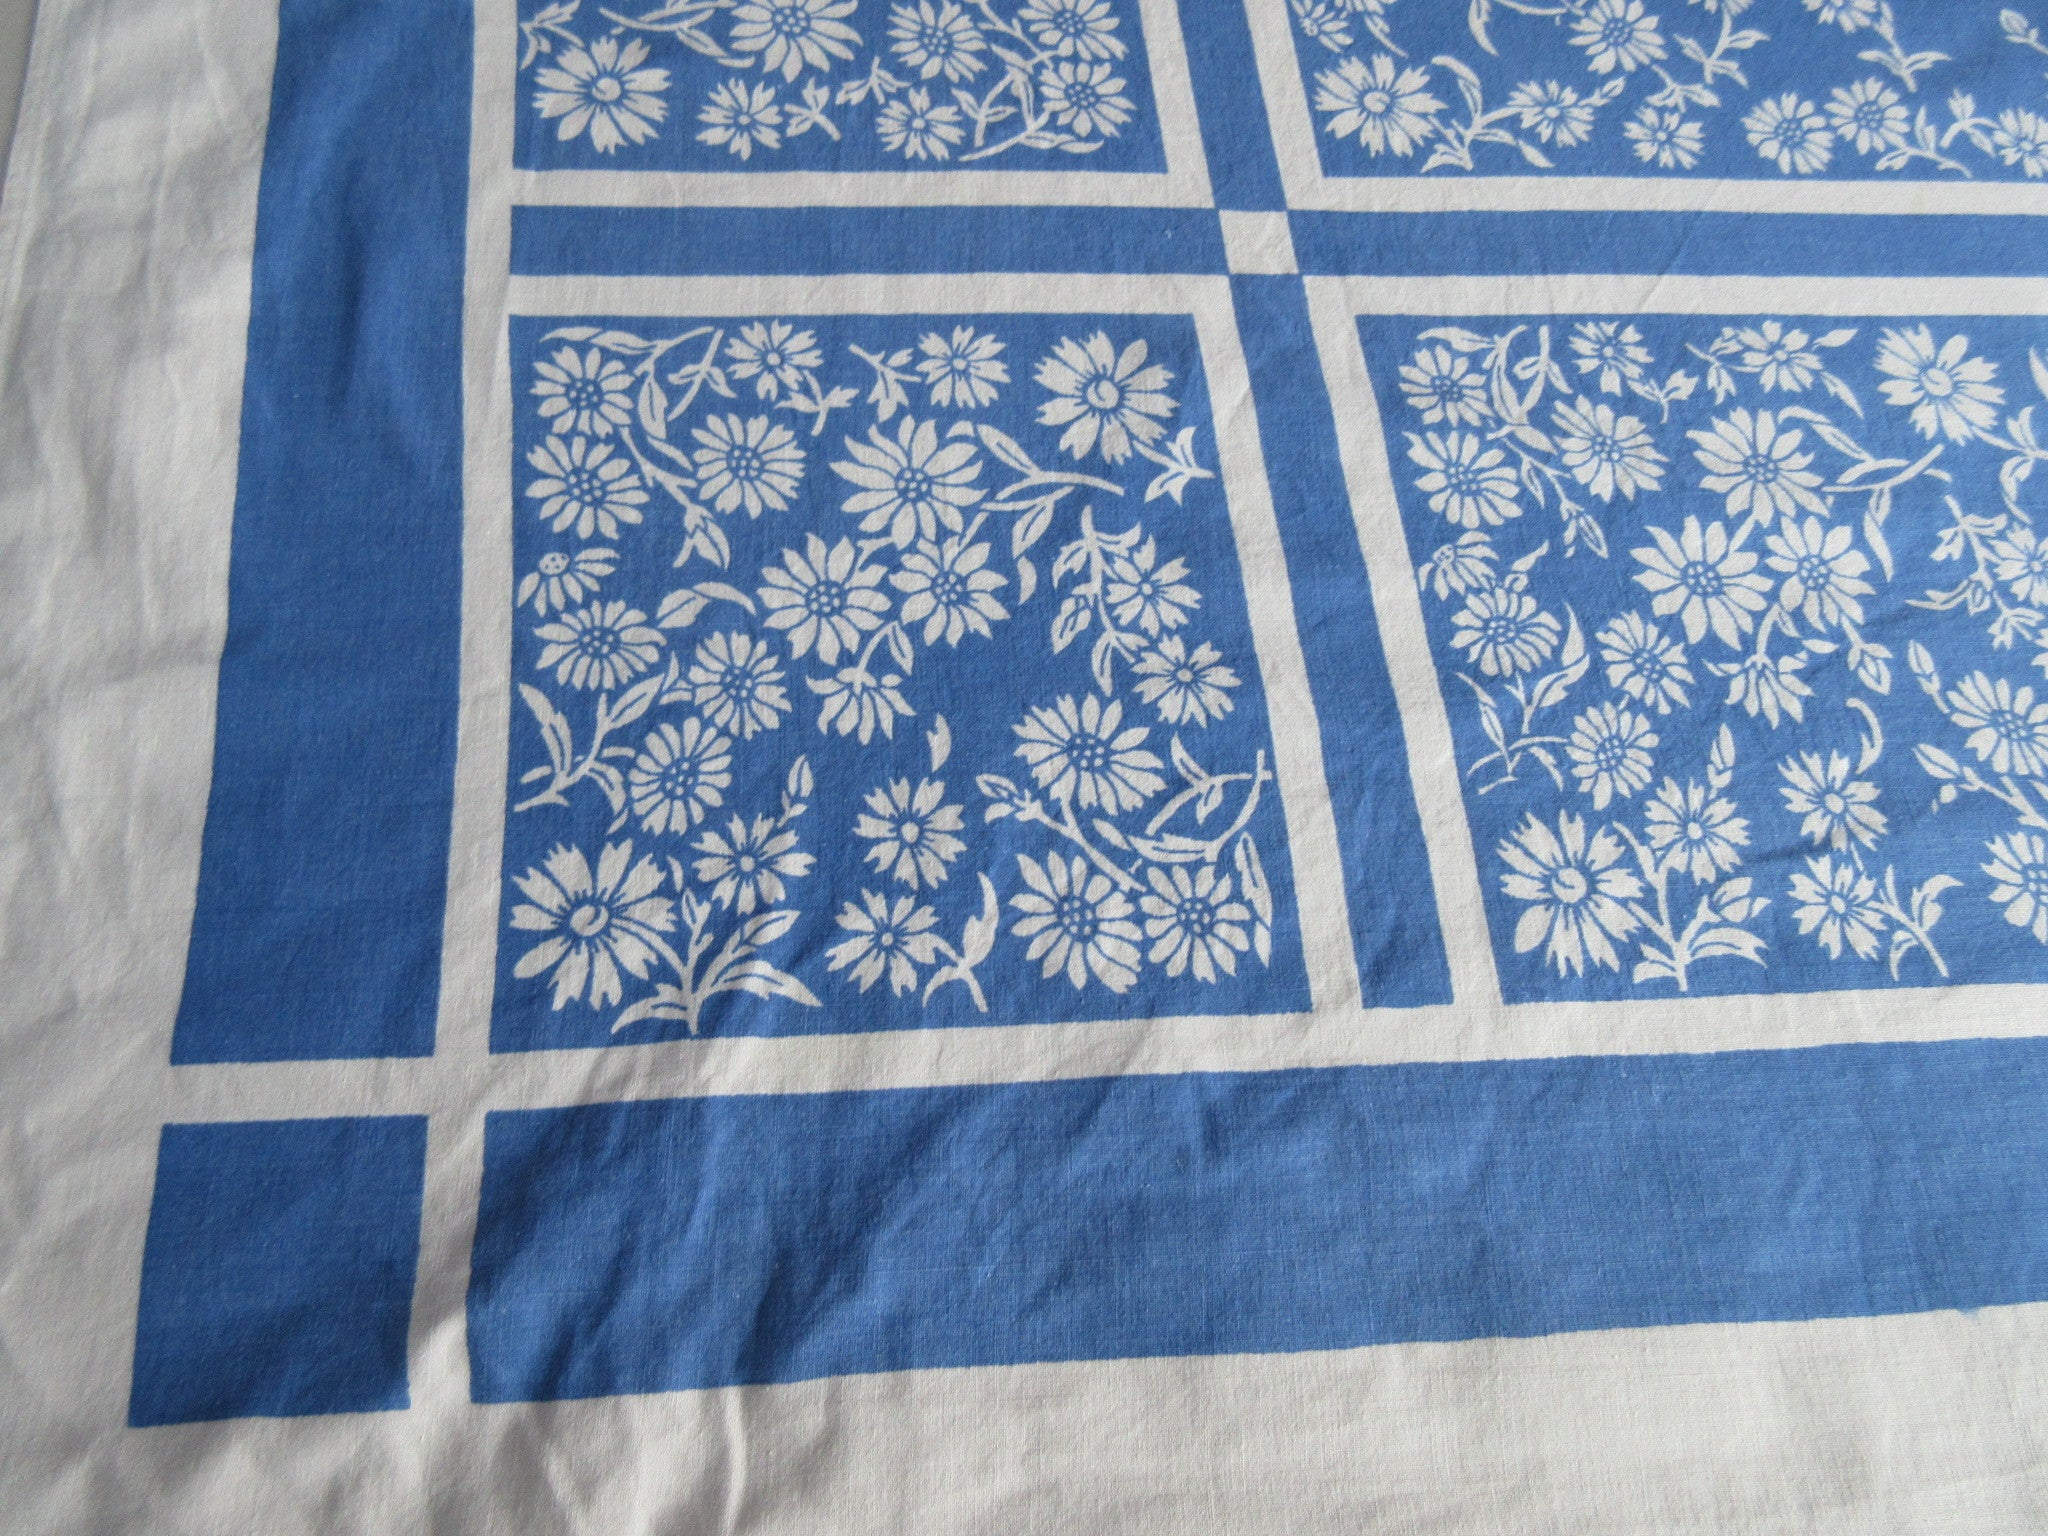 Large Cornflower Daisies Blue Napkins Floral Vintage Printed Tablecloth (71 X 54)